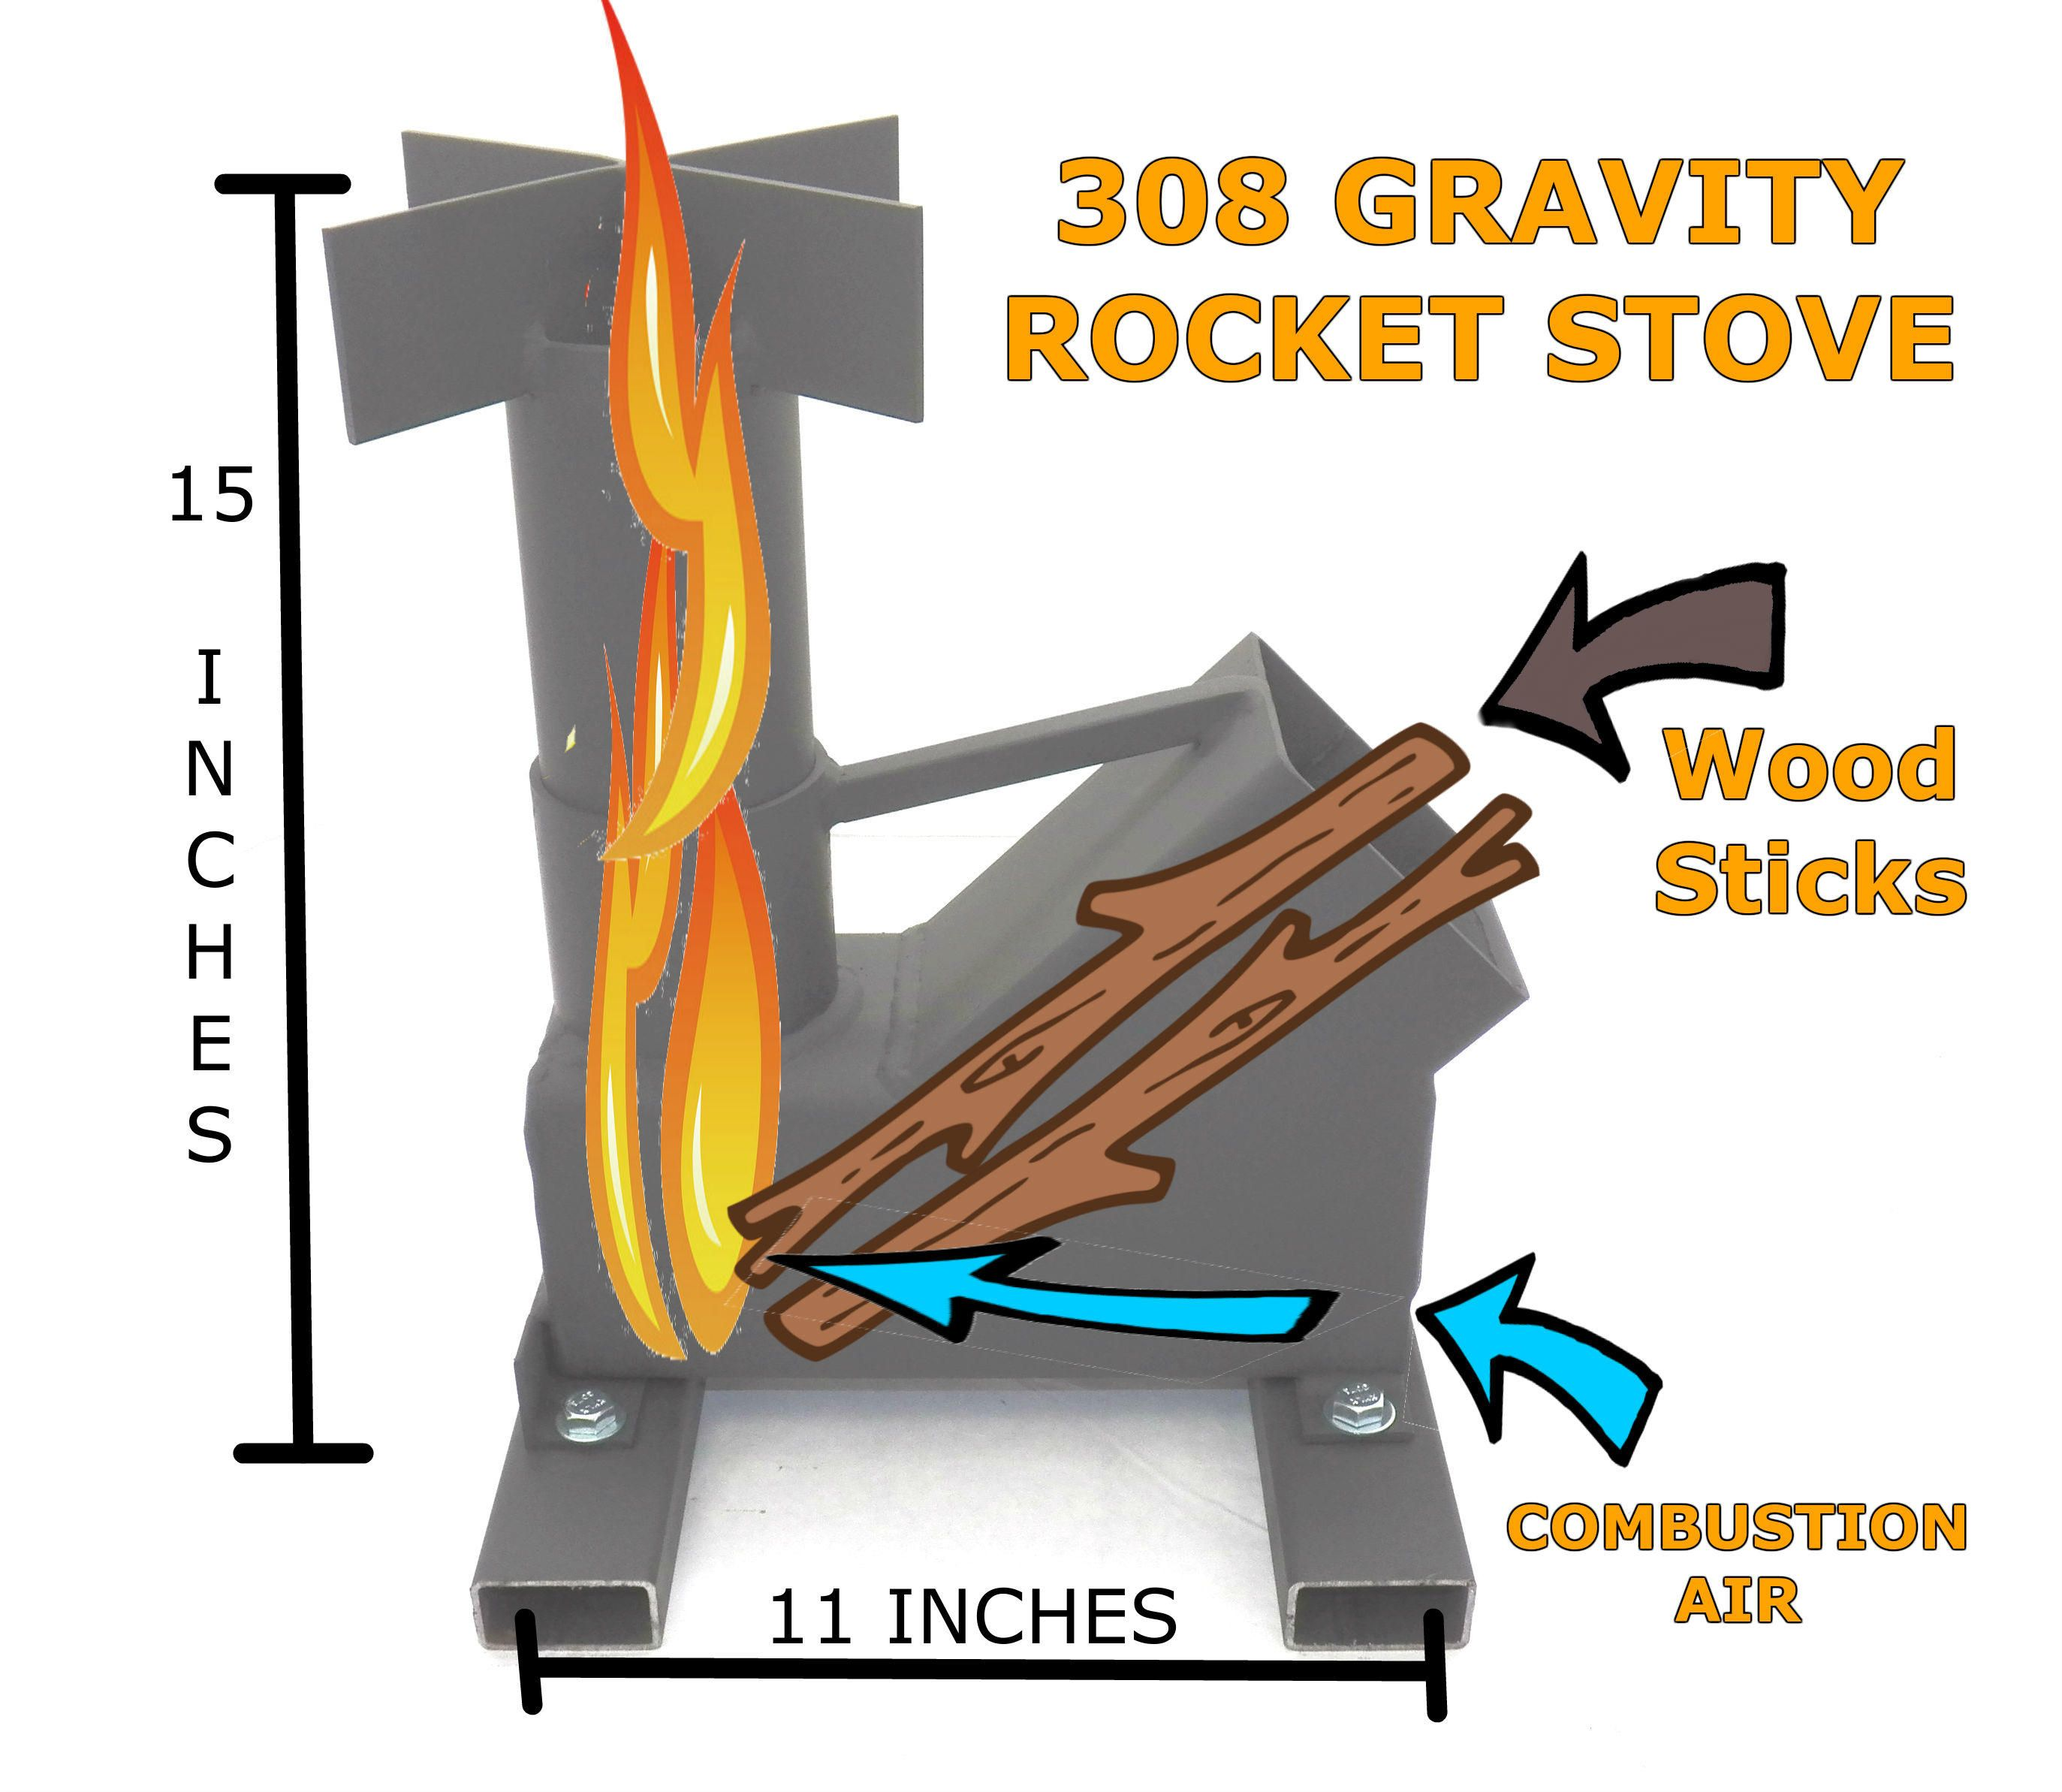 Bullet Proof 308 Gravity Feed Rocket Stove Rocket Stoves Welding Projects Rocket Stove Design